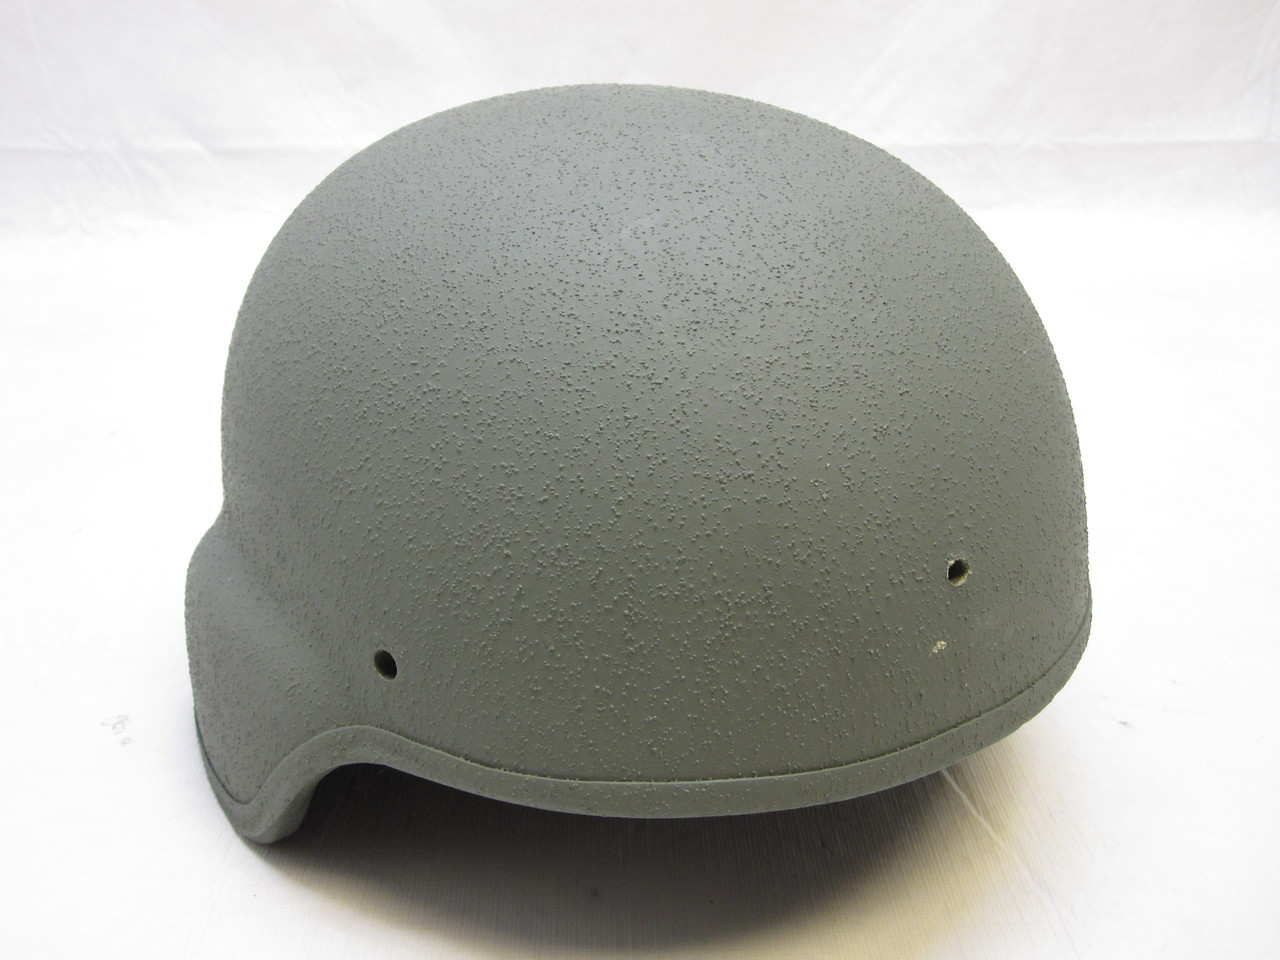 GENTEX ADVANCED COMBAT HELMET ACH FOLIAGE GREEN LARGE LEVEL III-A